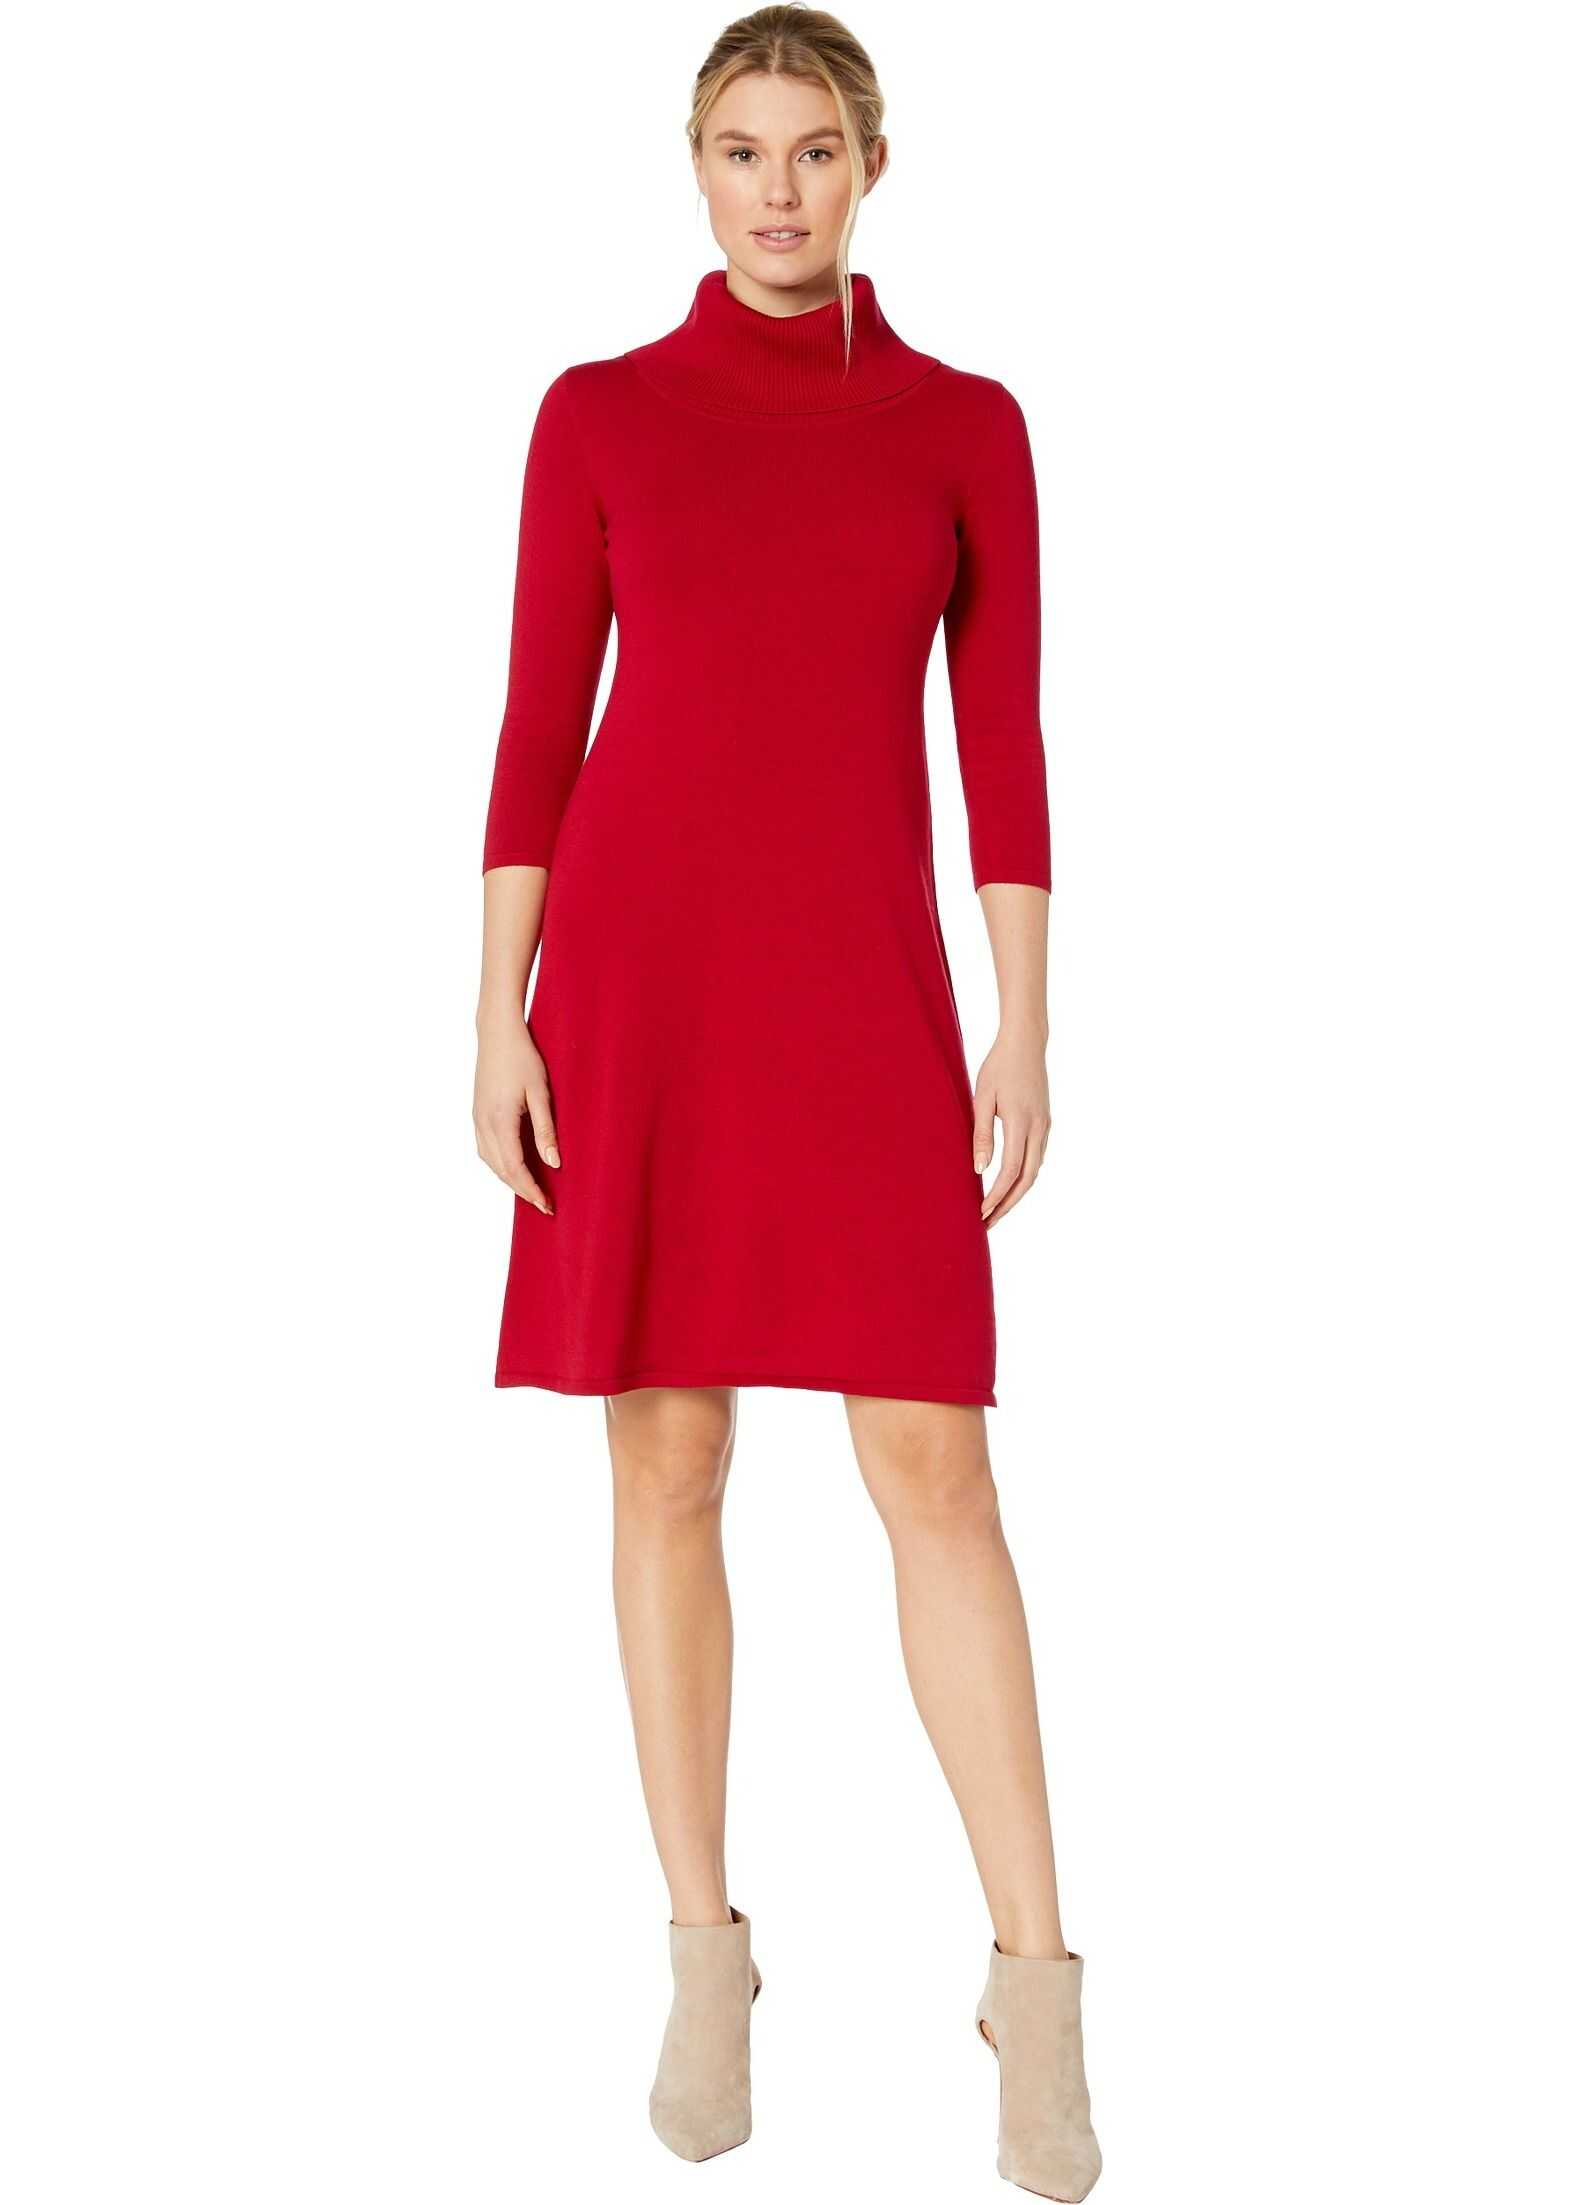 Nine West Cowl Neck Fit-and-Flare Knit Dress Rogue